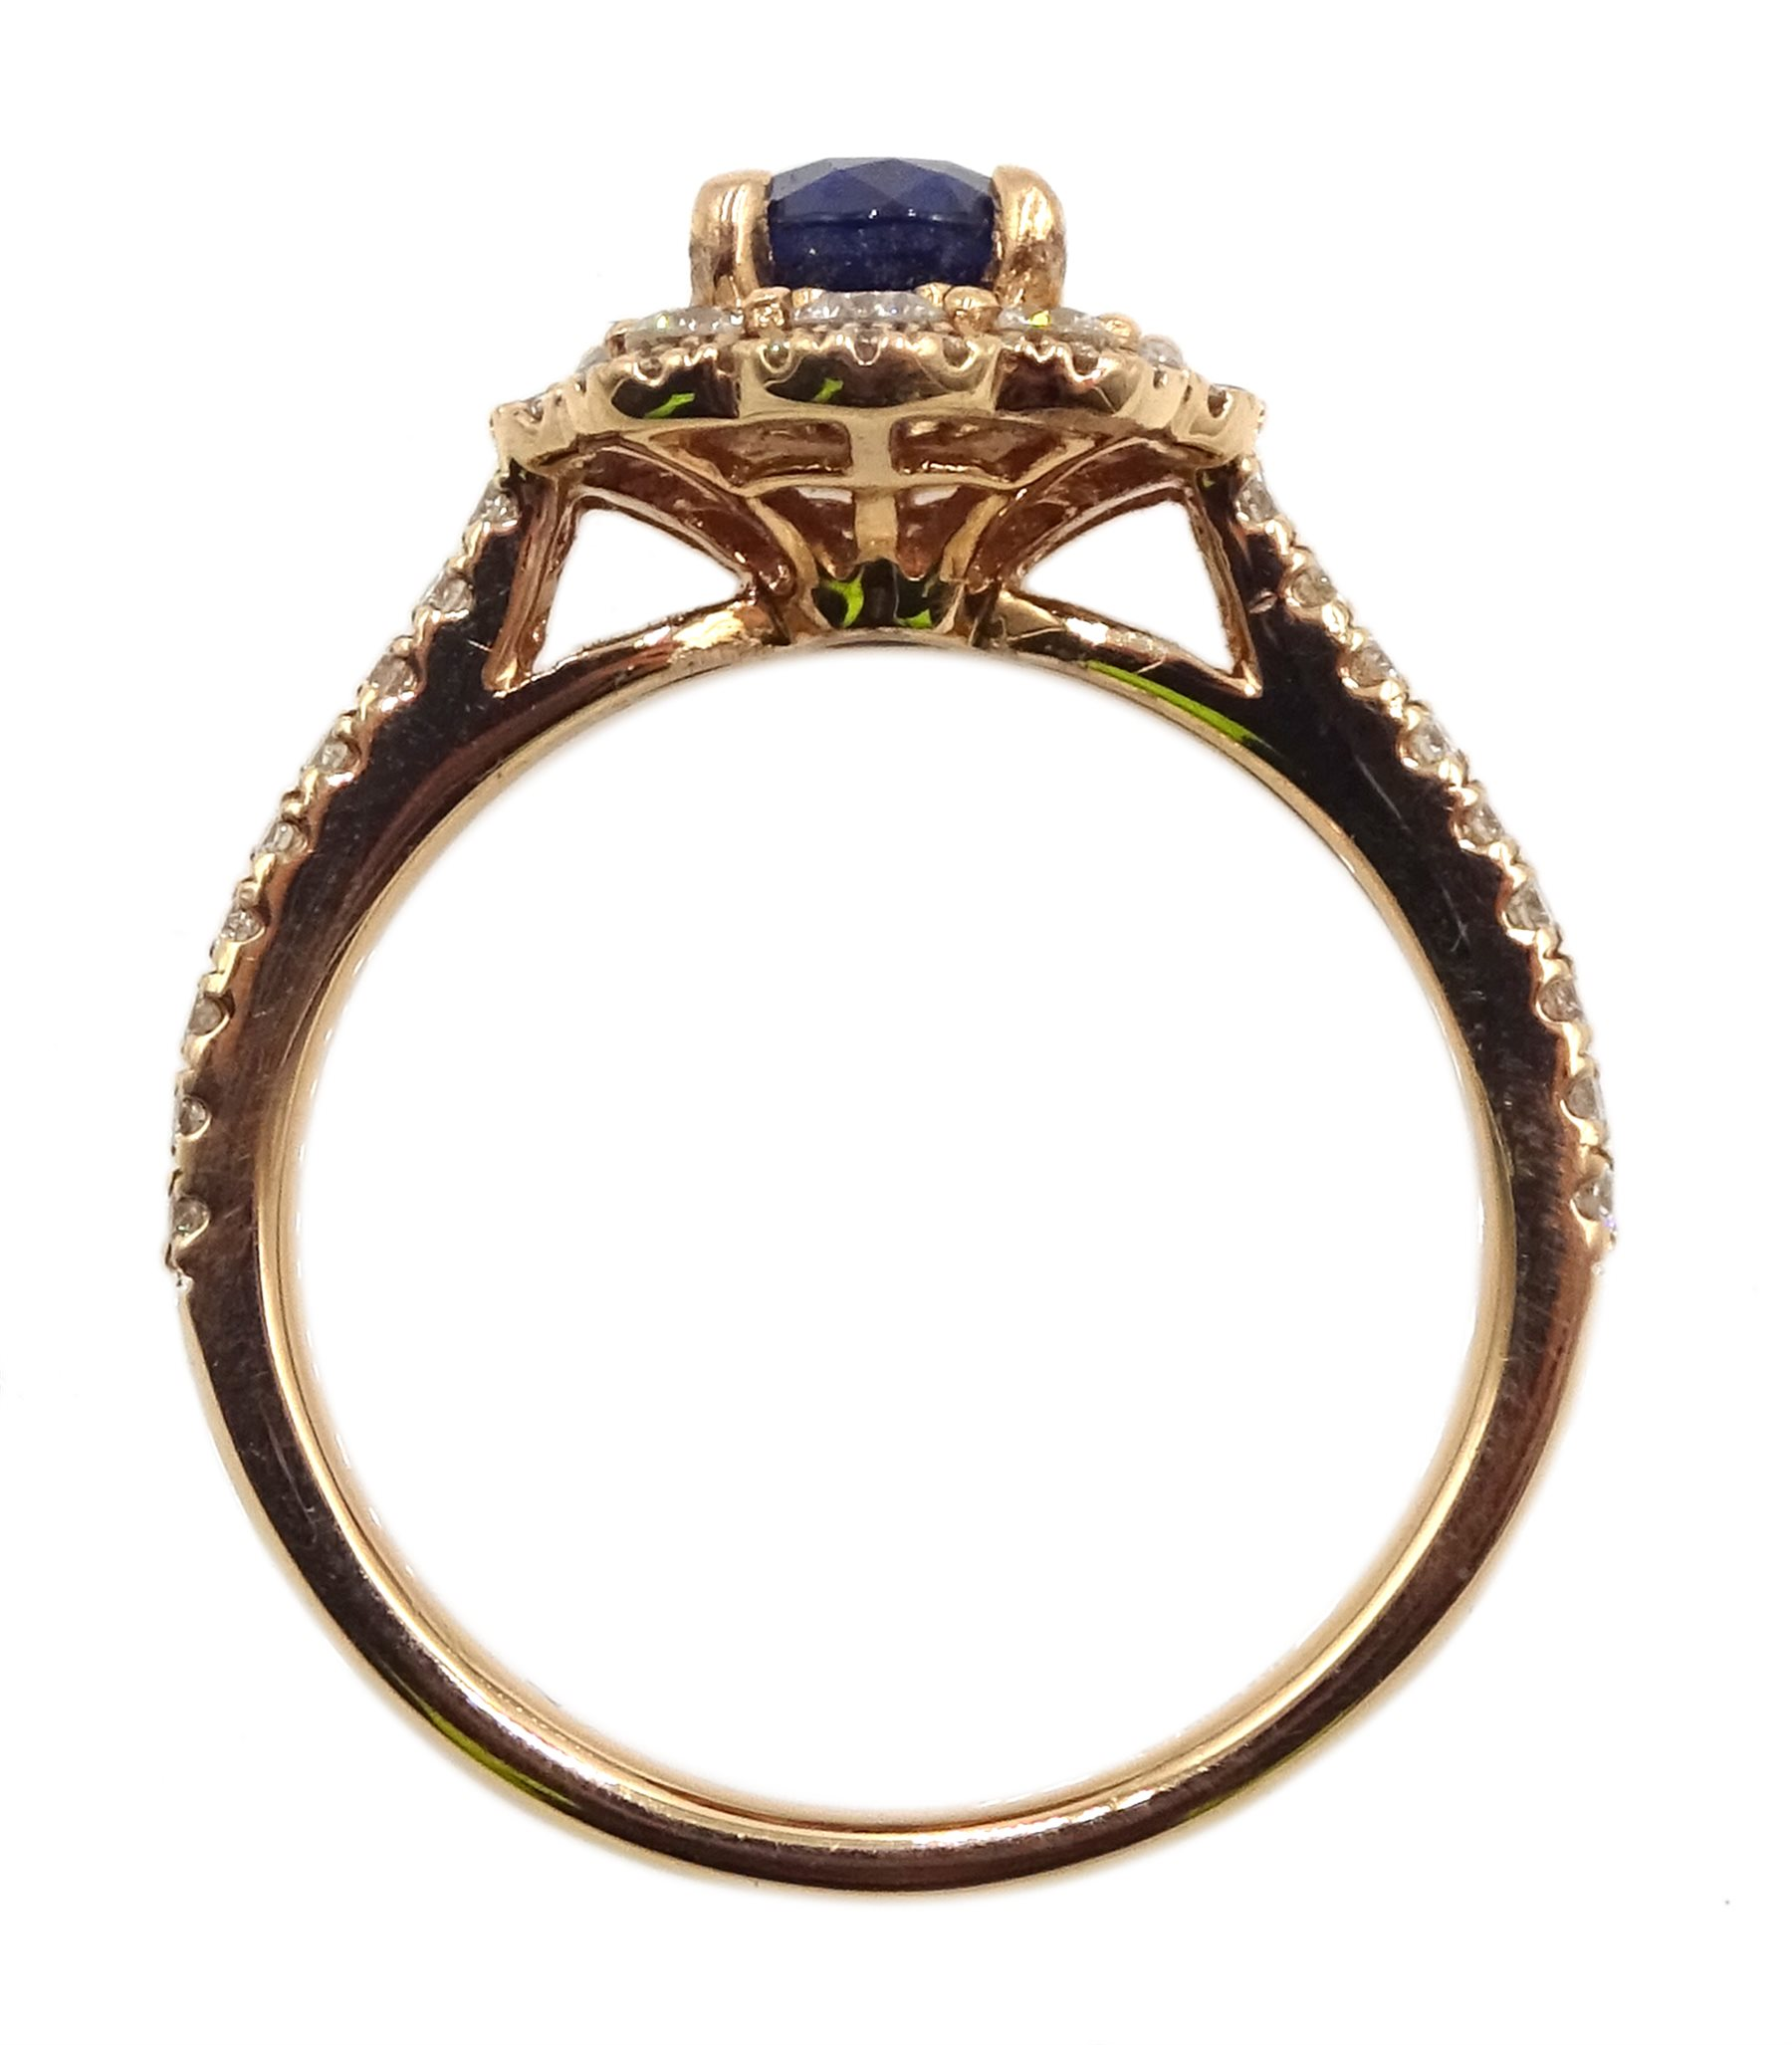 18ct rose gold oval sapphire and diamond cluster ring, with diamond set shoulders, hallmarked, sapph - Image 5 of 6